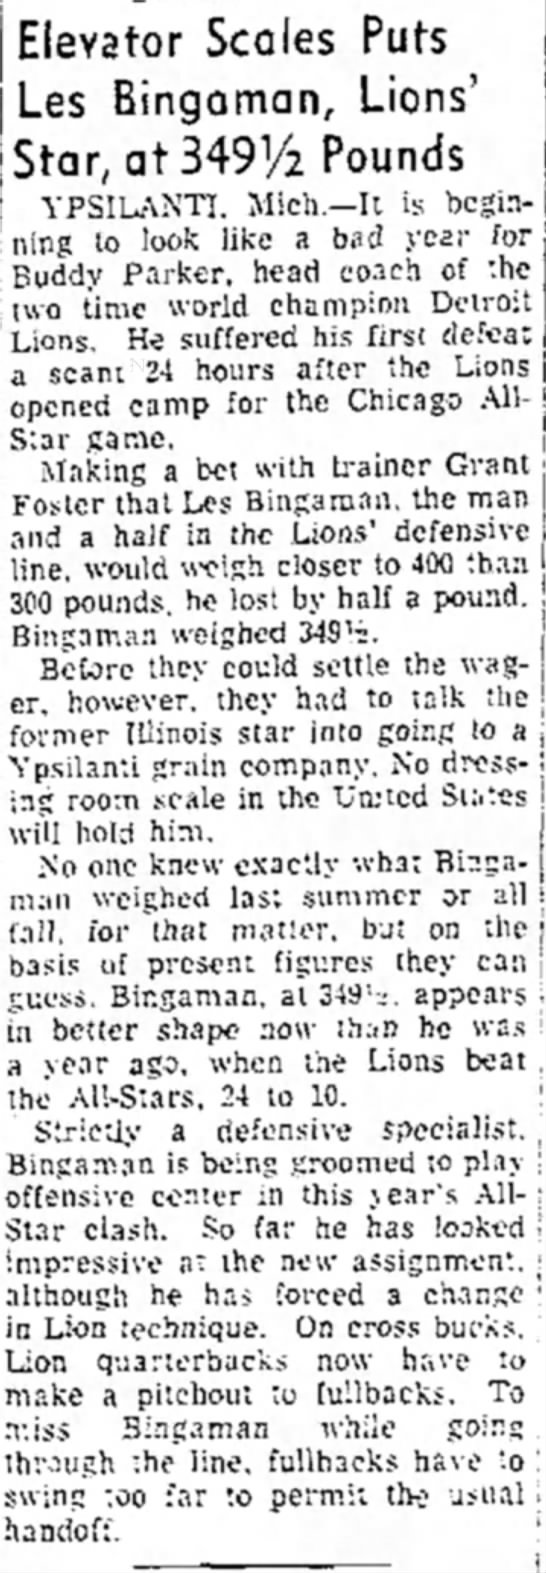 Elevator Scales Put Les Bingaman, Lions' Star, at 349-1/2 Pounds -